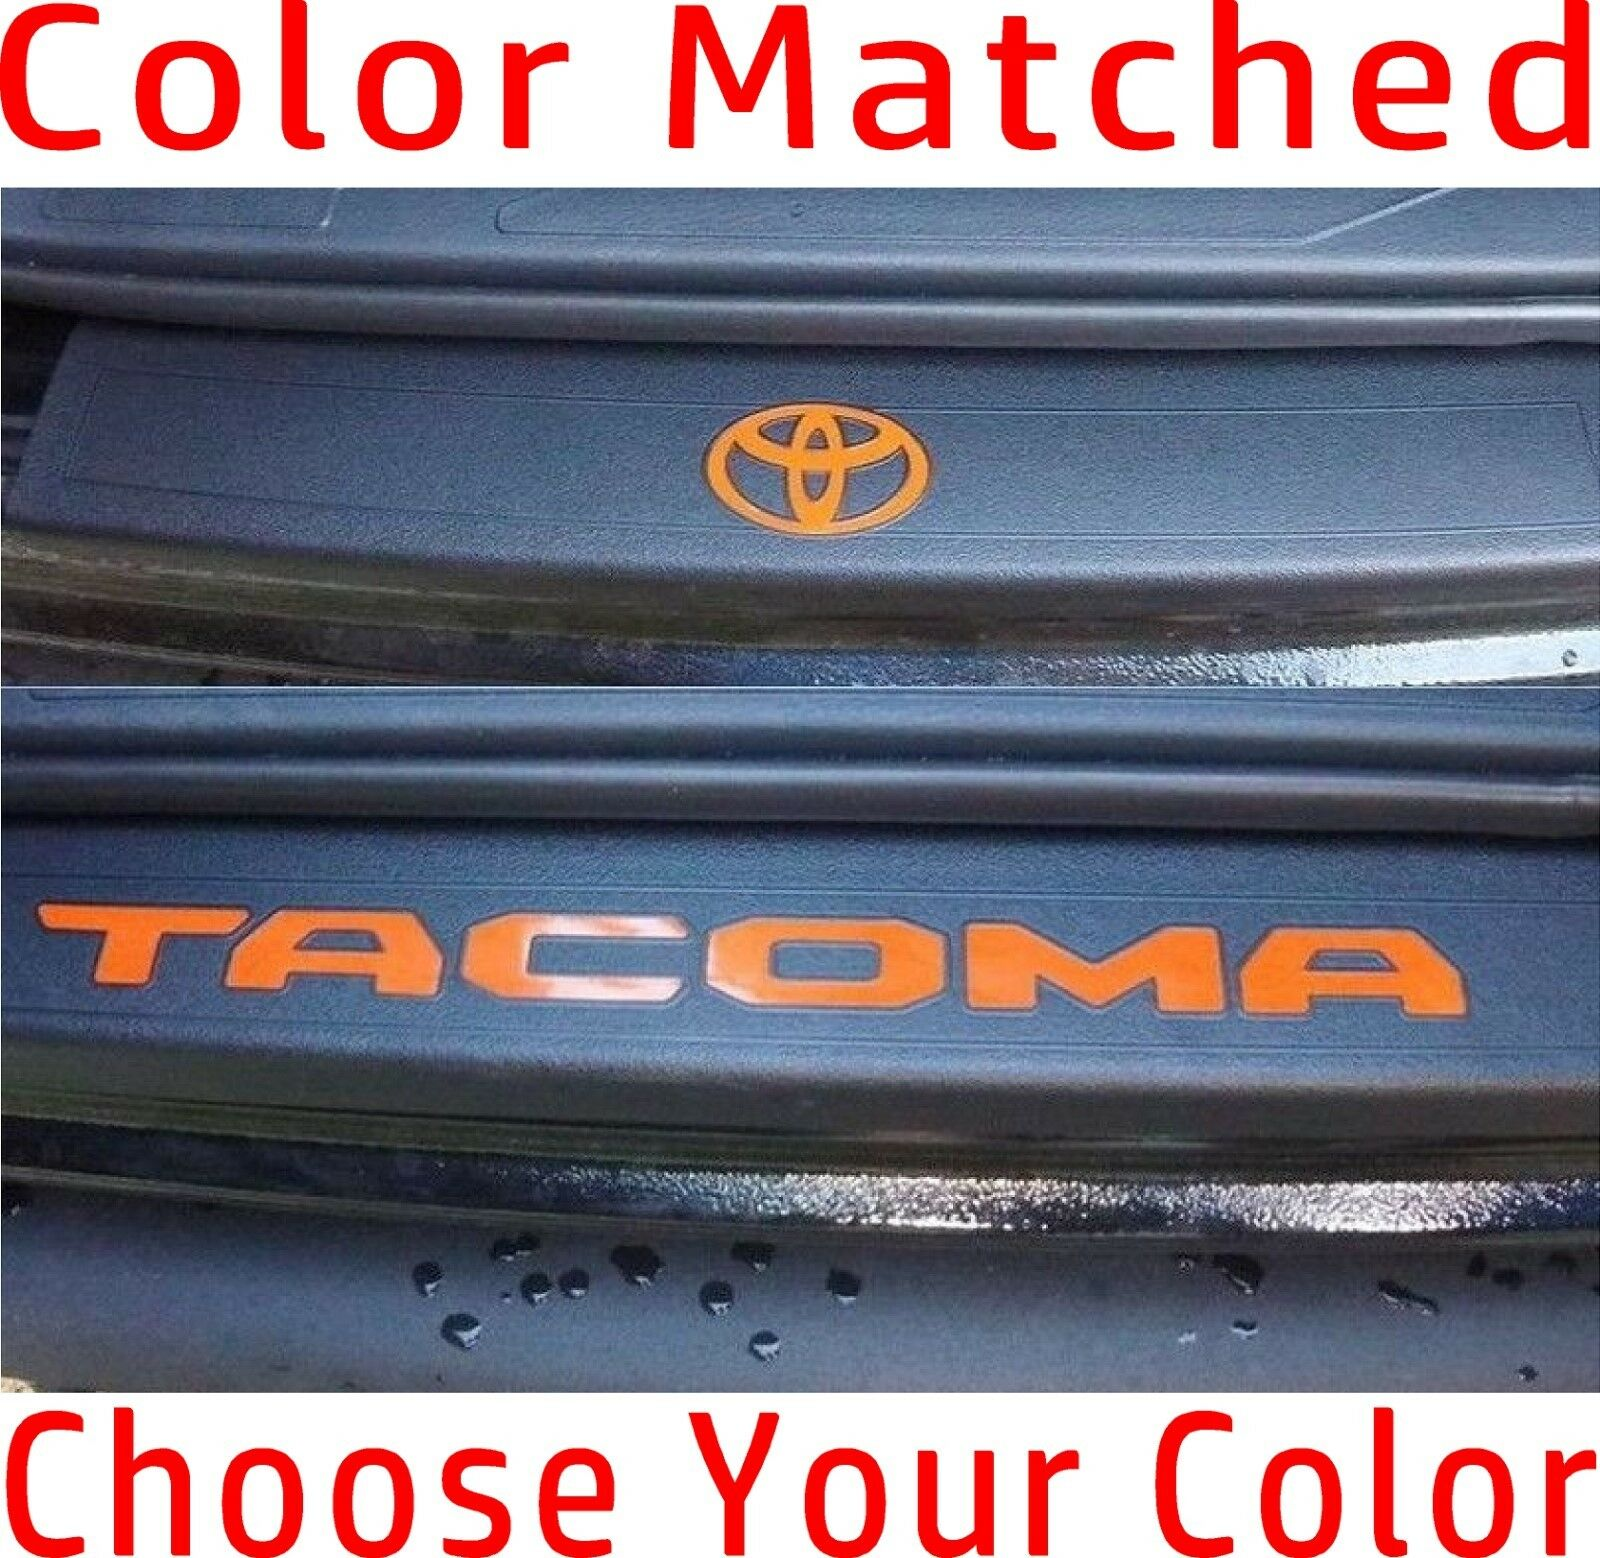 Toyota Tacoma Door Sill Decals Premium Vinyl Decals Inserts  2016-2019 Letters